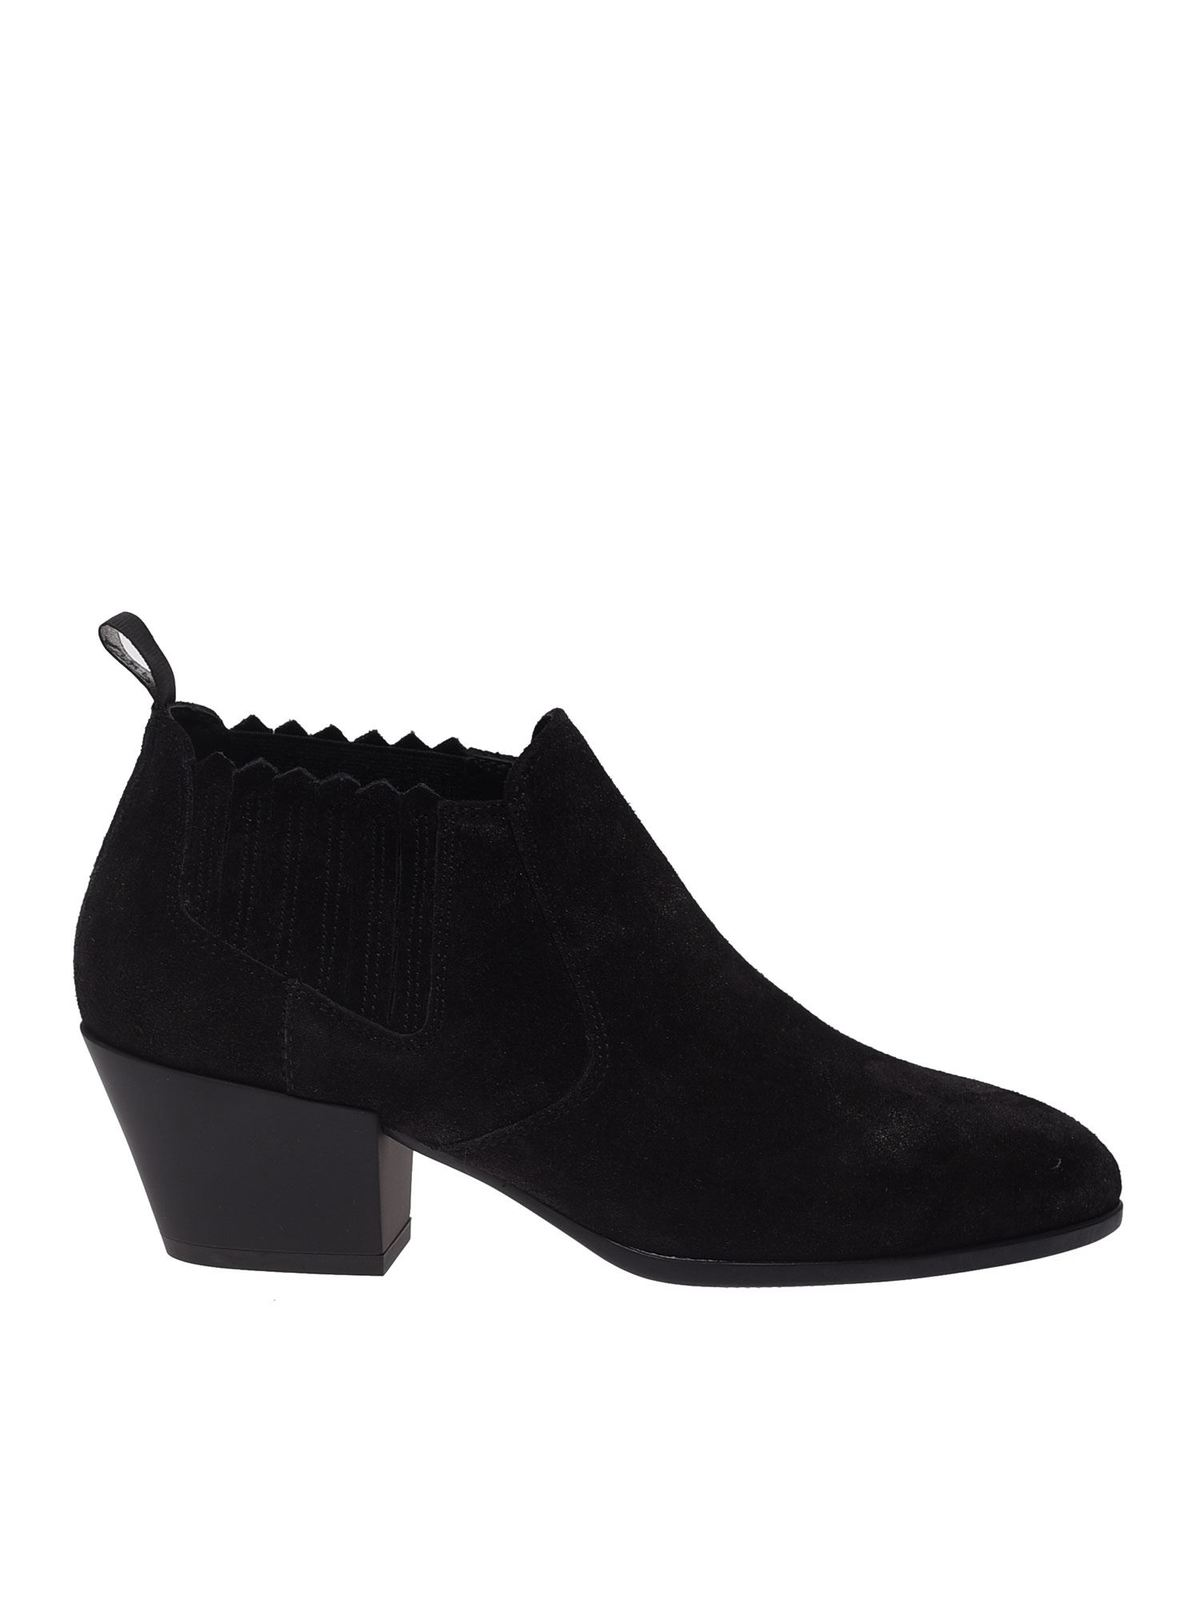 Hogan H401 CHELSEA BOOTS IN BLACK